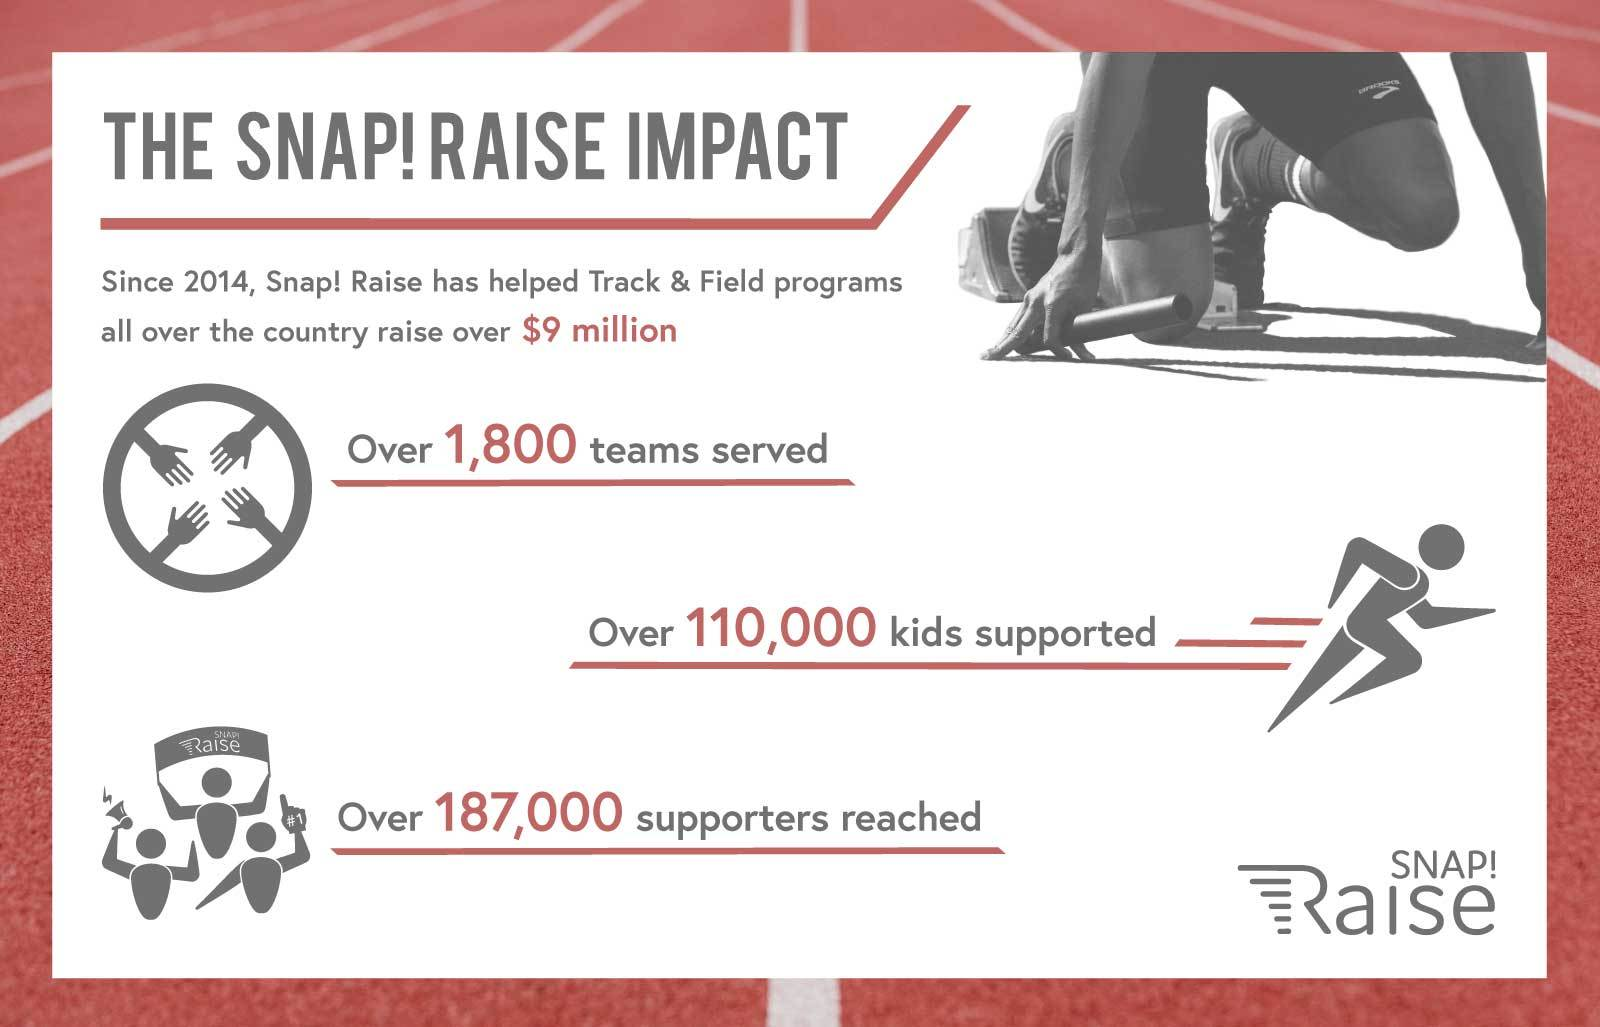 snap raise track and field fundraising impact